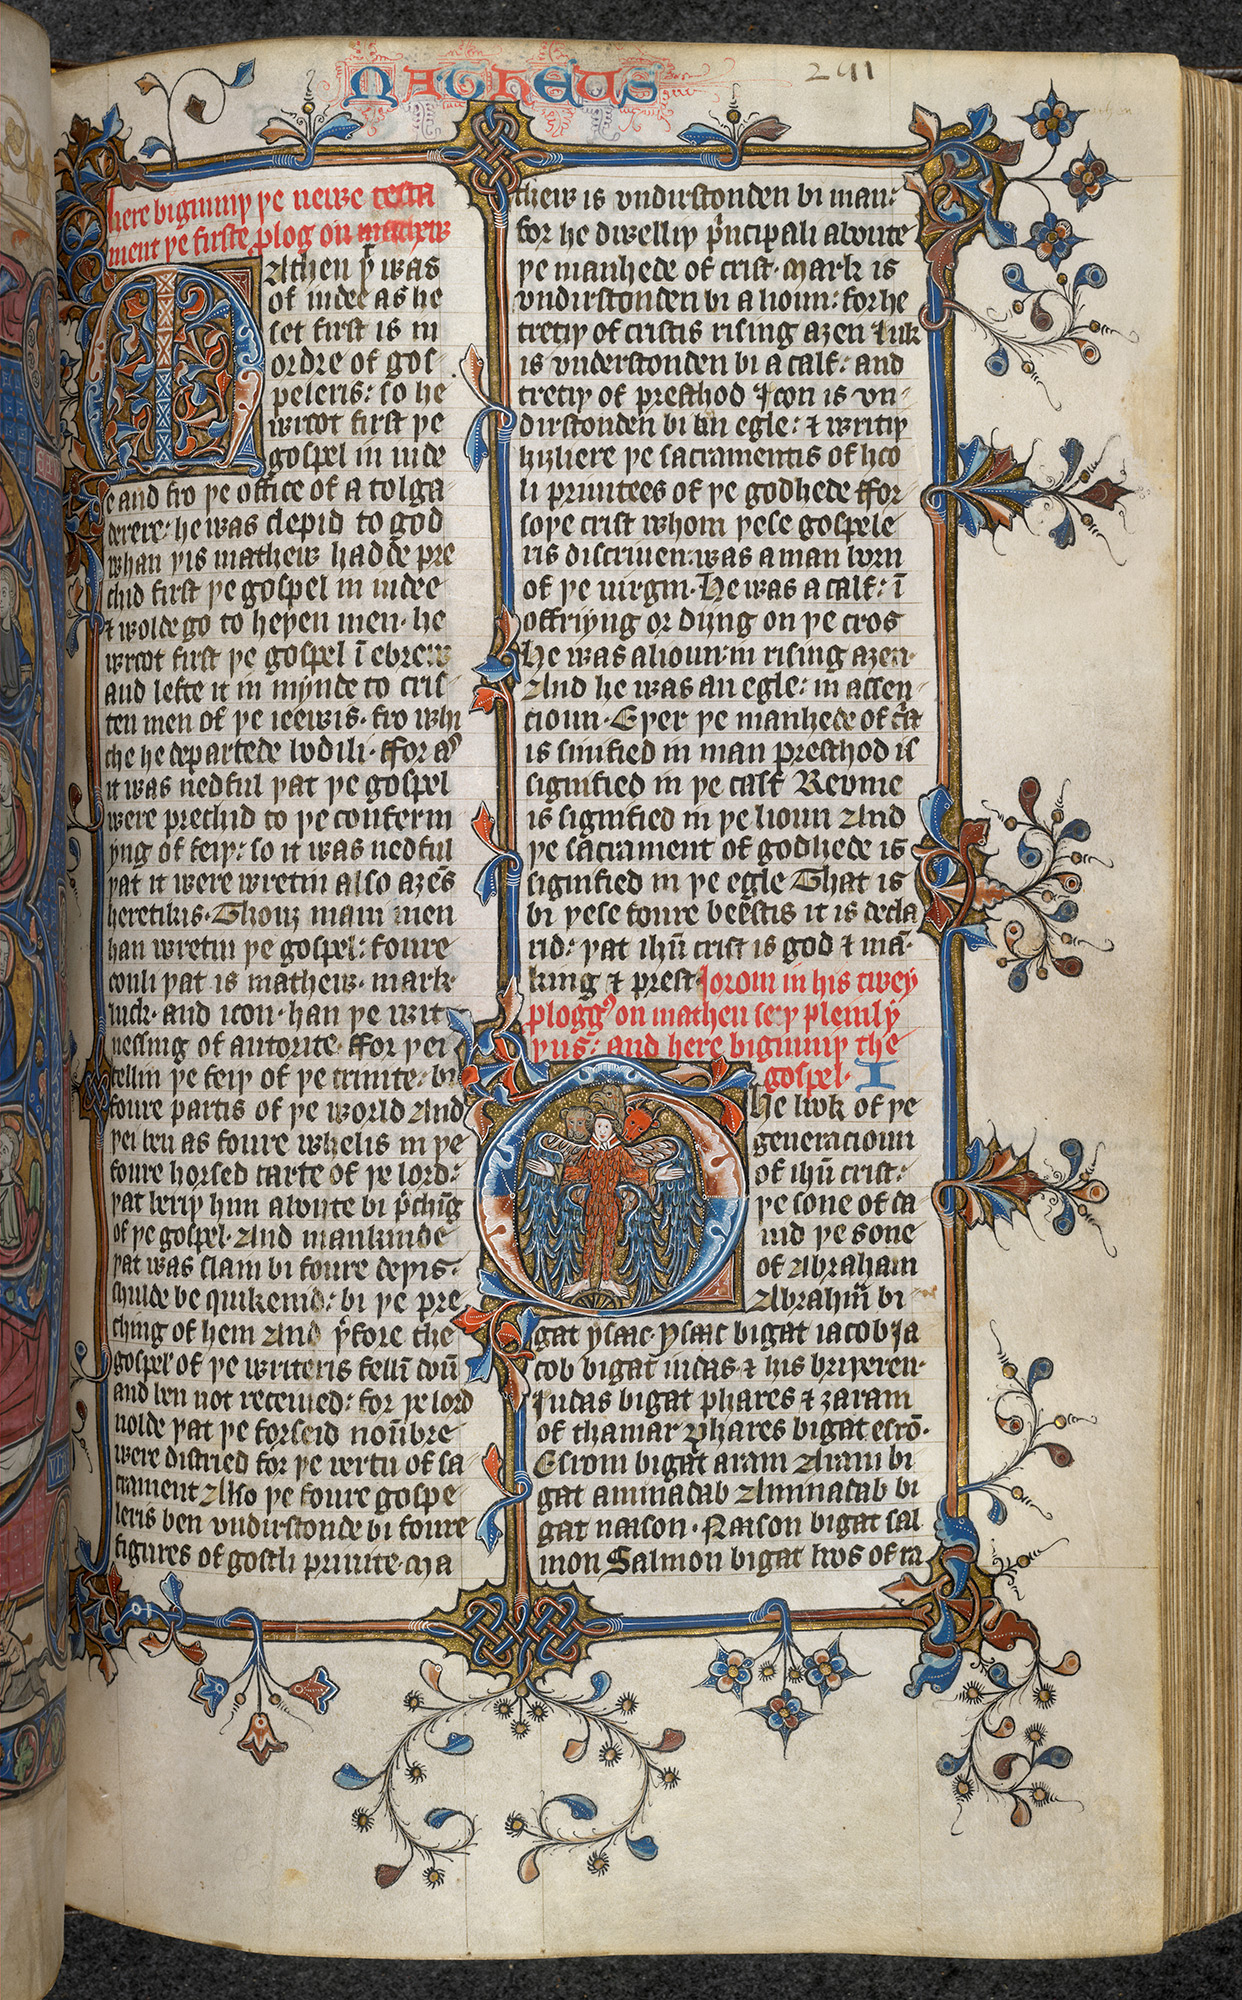 Early 15th century illuminated manuscript of the Late Version of the Wycliffite Bible, beginning of the New Testament.